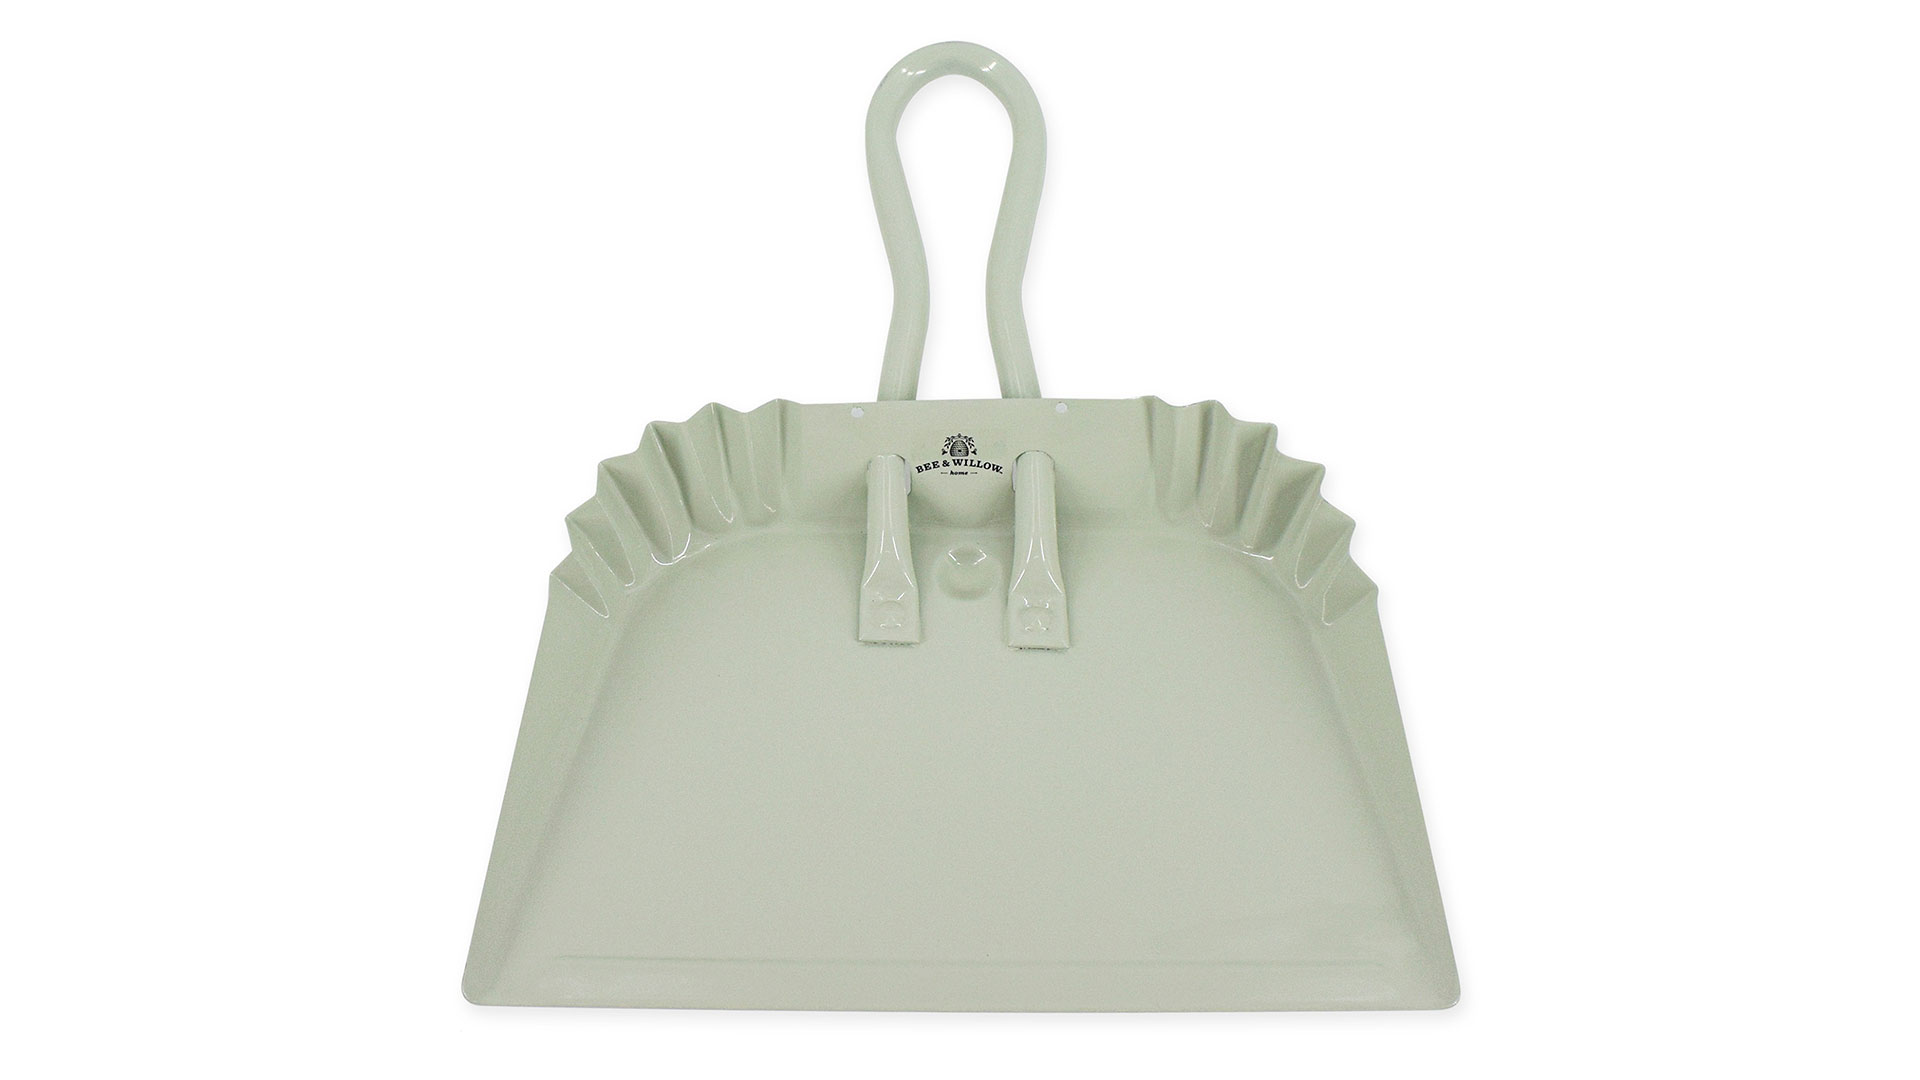 Bed Bath & Beyond Bee & Willow Dustpan